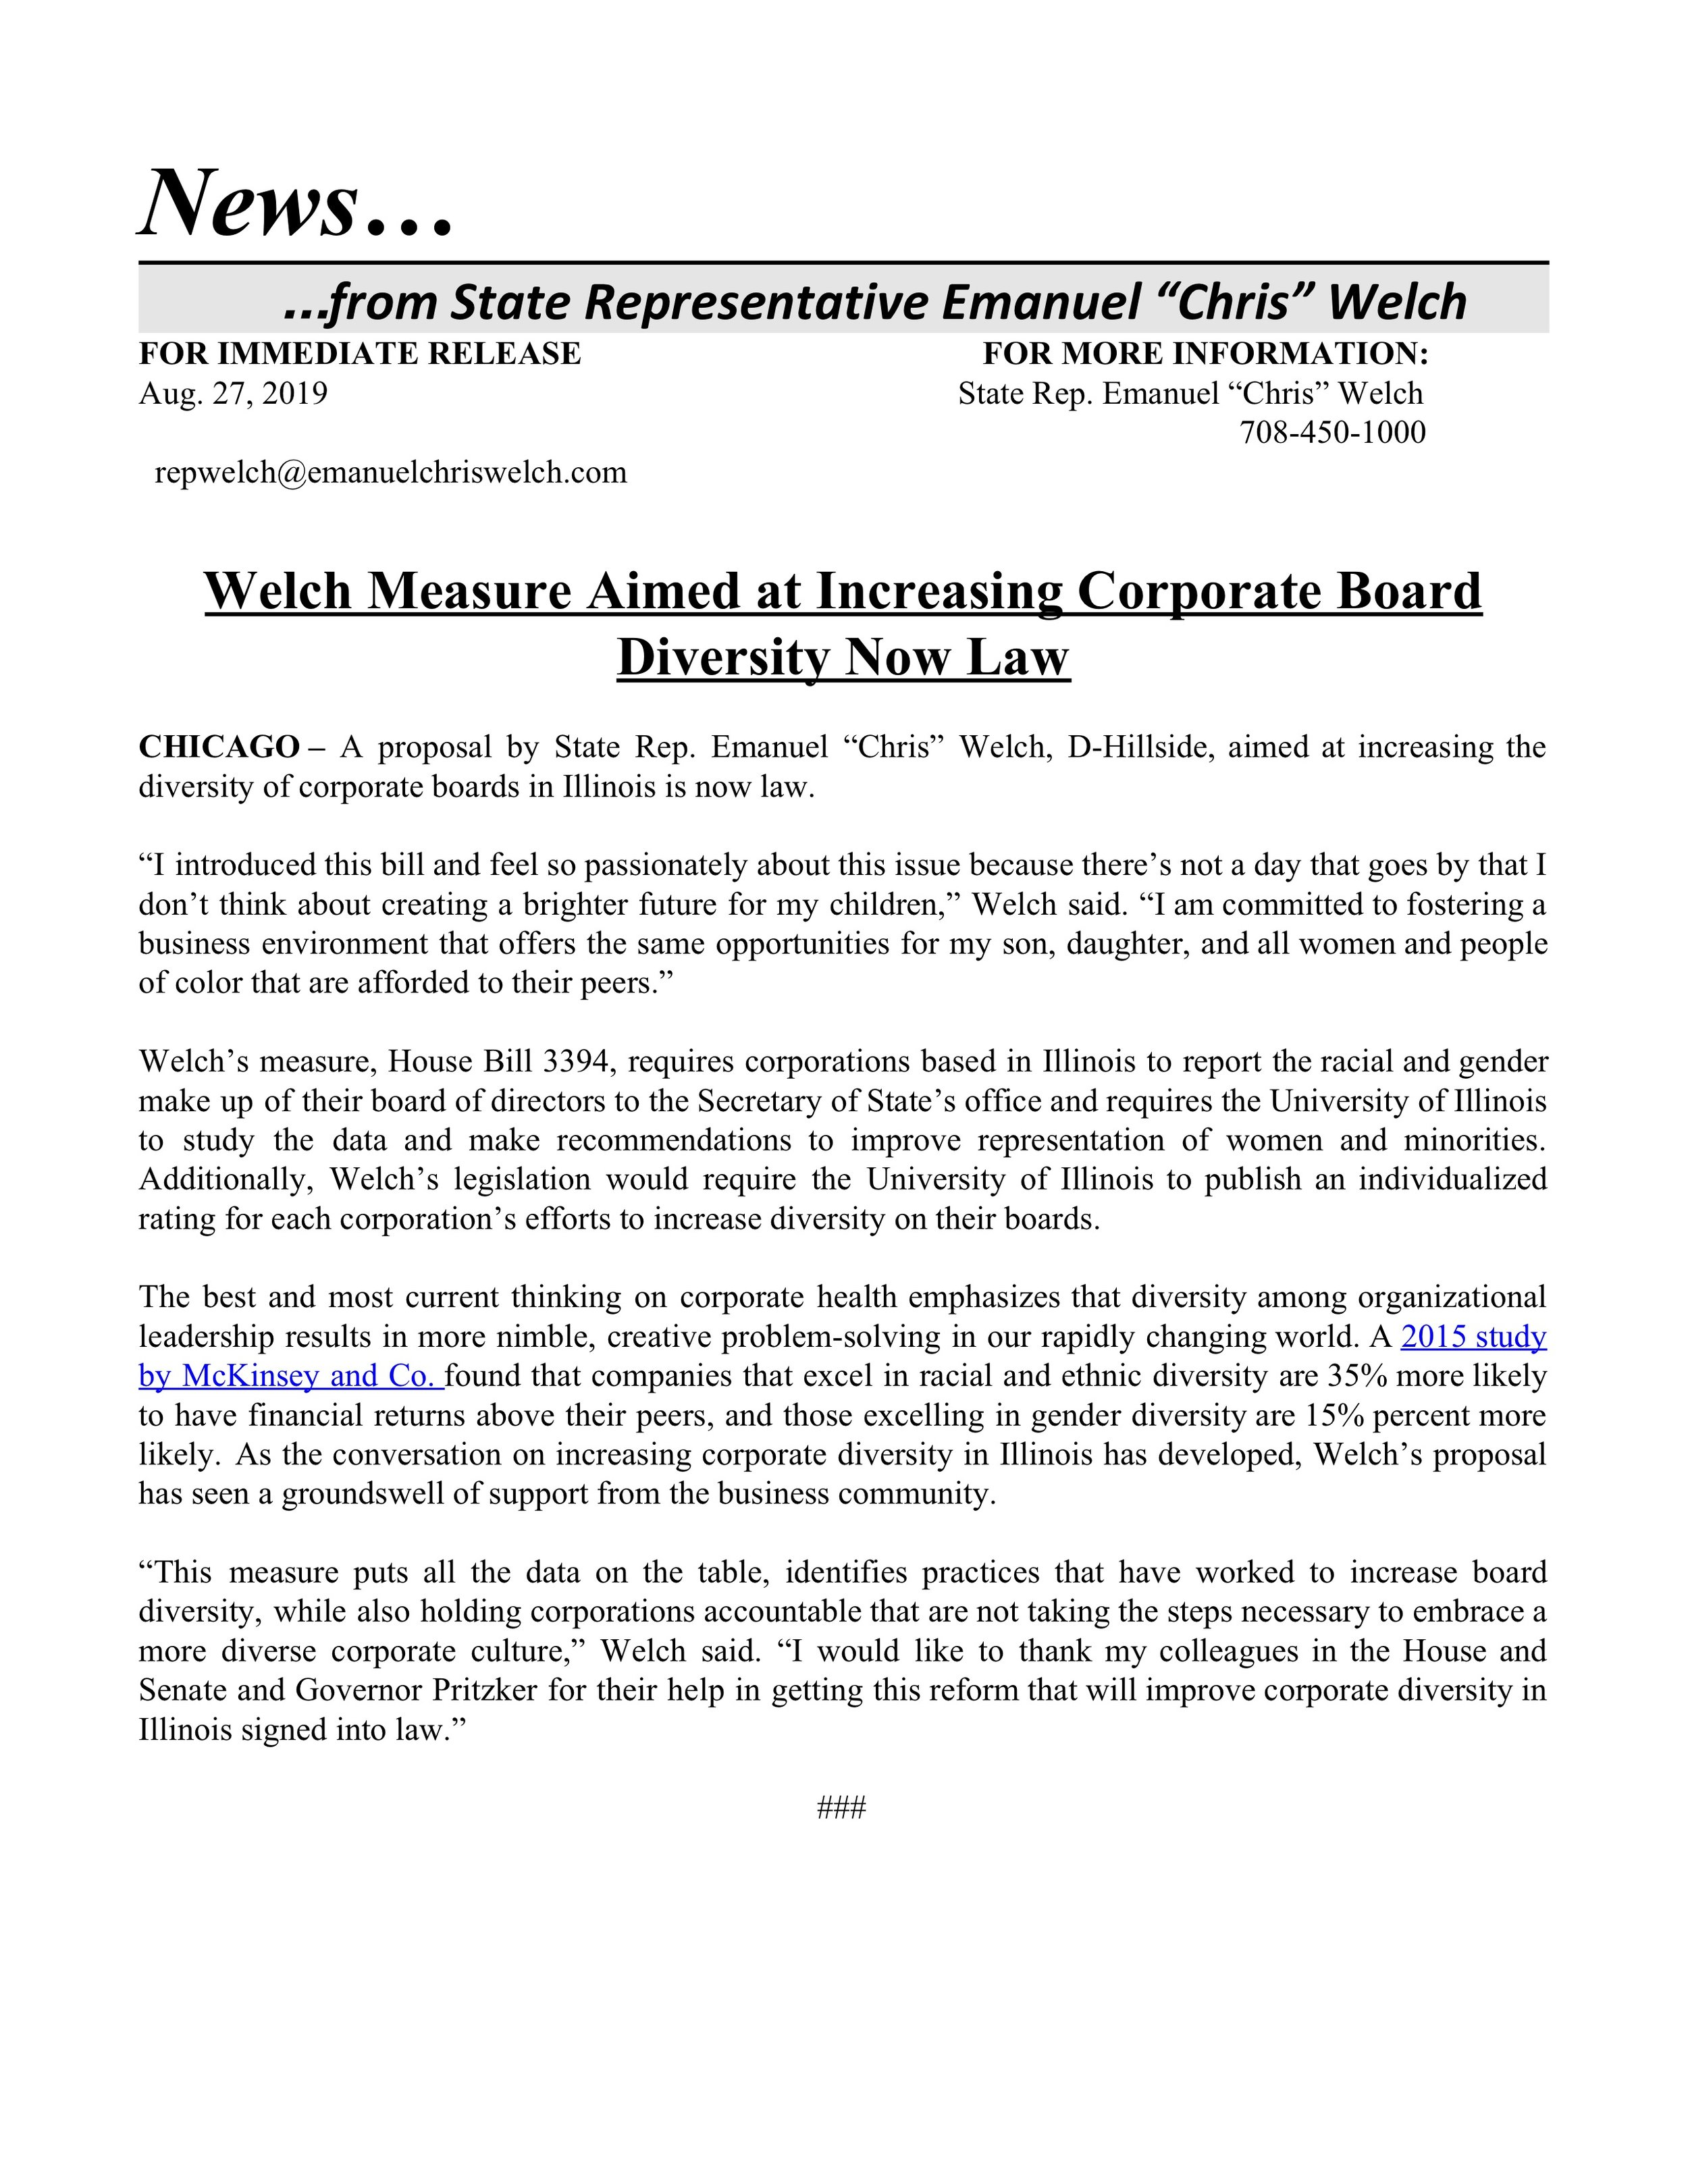 Welch Measure Aimed at Increasing Corporate Board Diversity Now Law  (August 27, 2019)